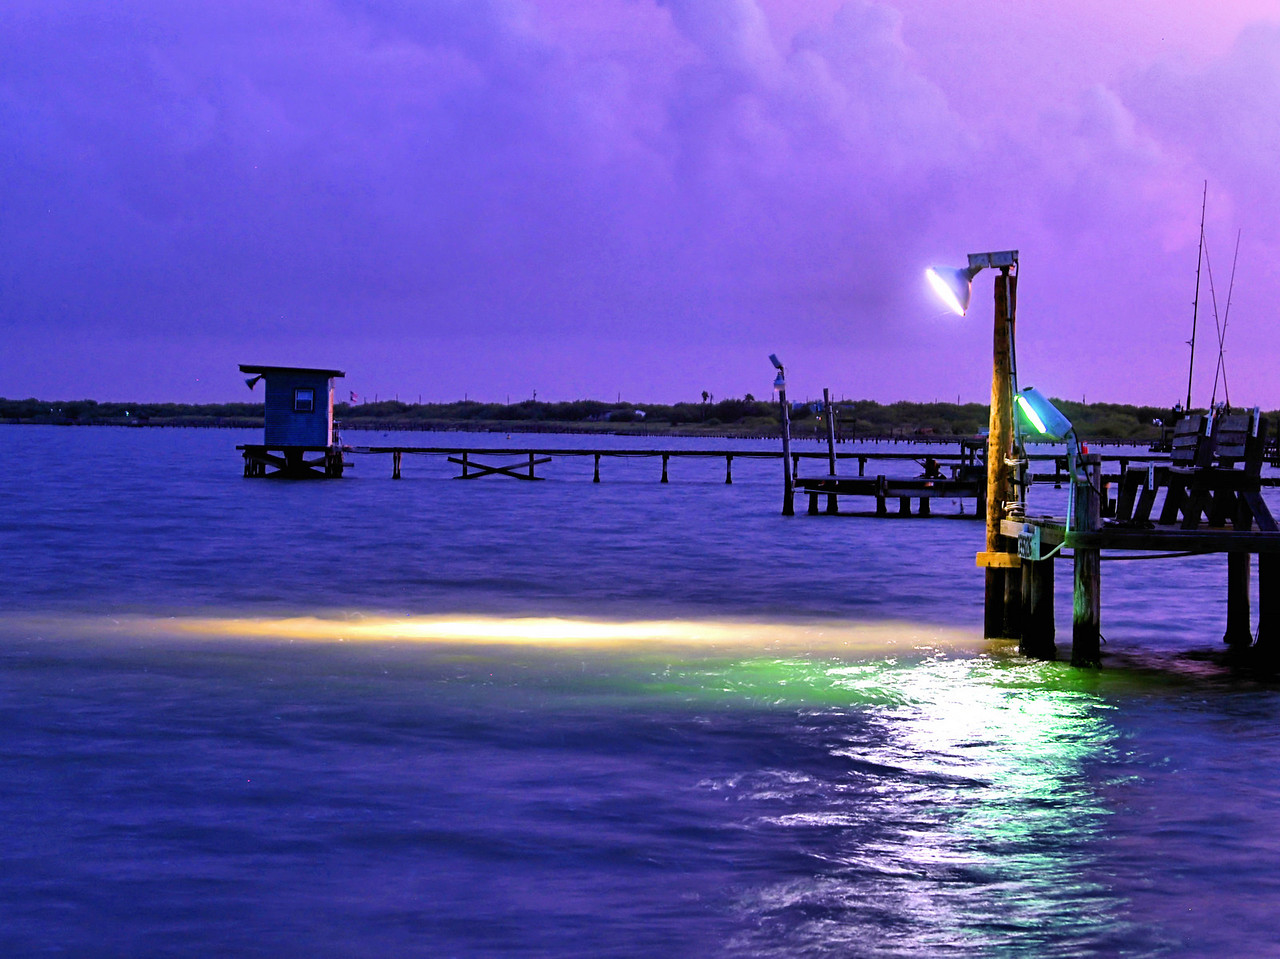 OLYMPUS DIGITAL CAMERA--The lights at the end of the pier are on  at sunset.  The lights stay on<br /> all night to attract baitfish, which in turn attract speckled trout, redfish, and black drum.